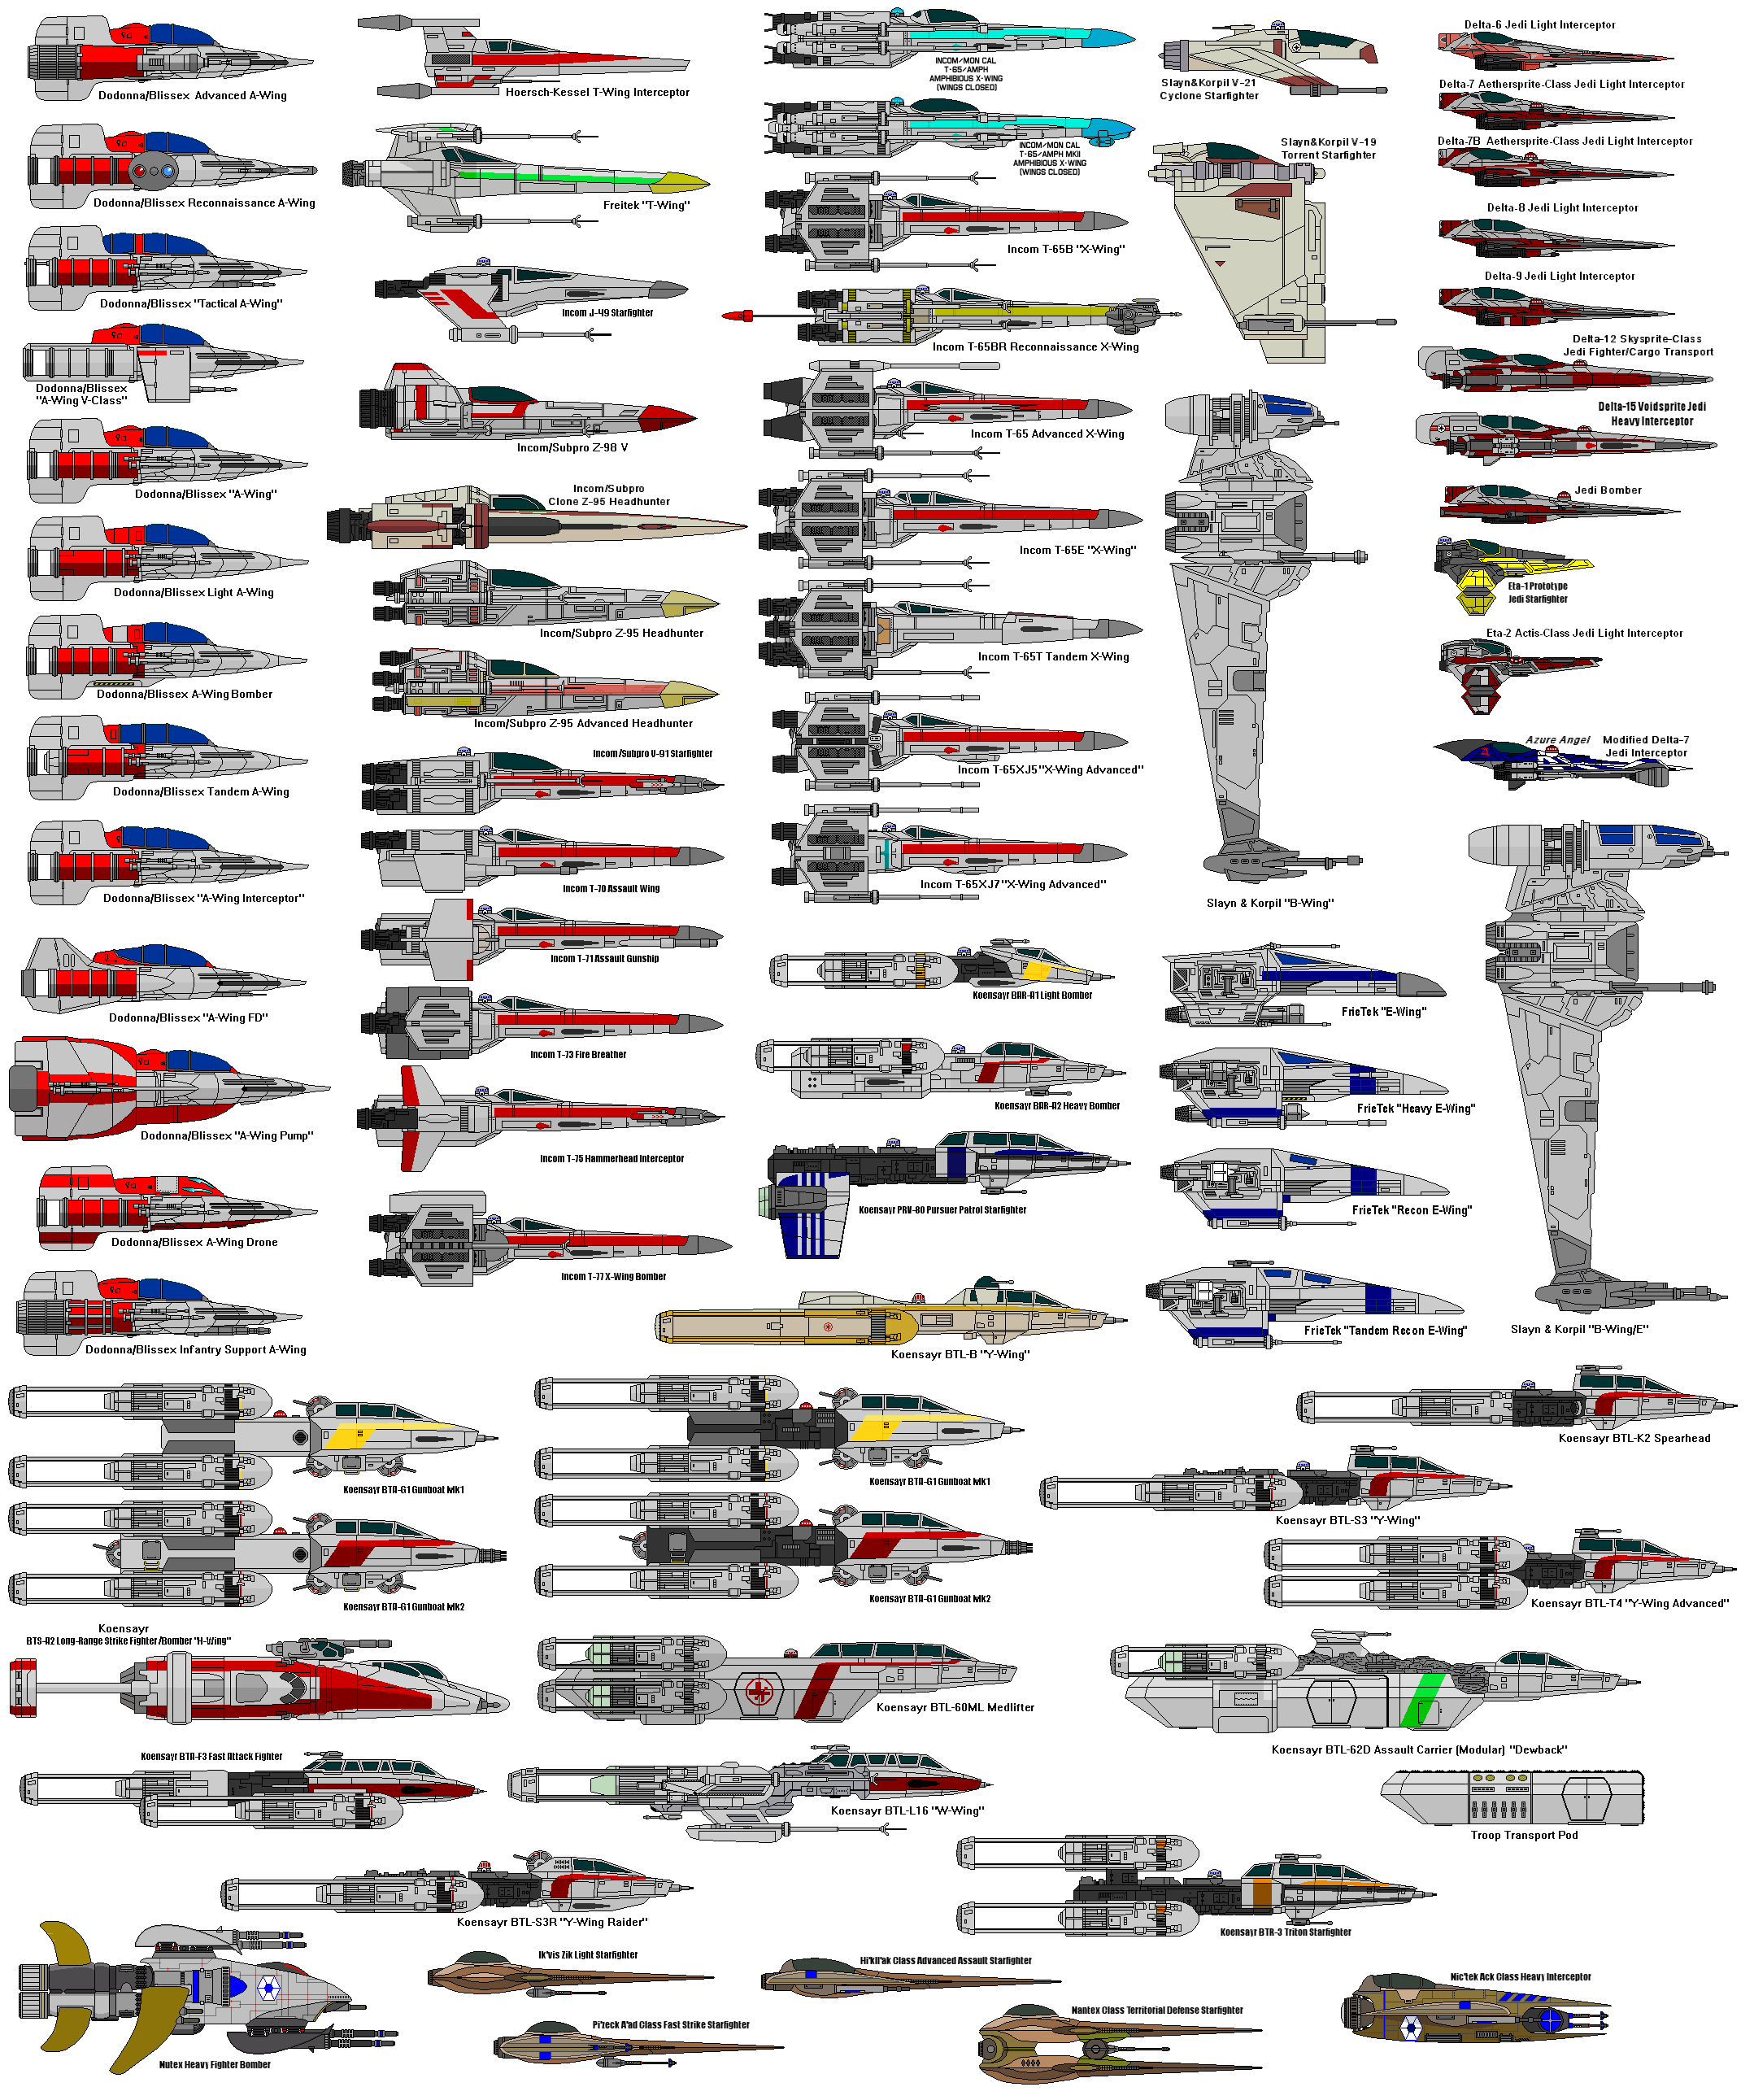 Size comparison of ships from Star Wars